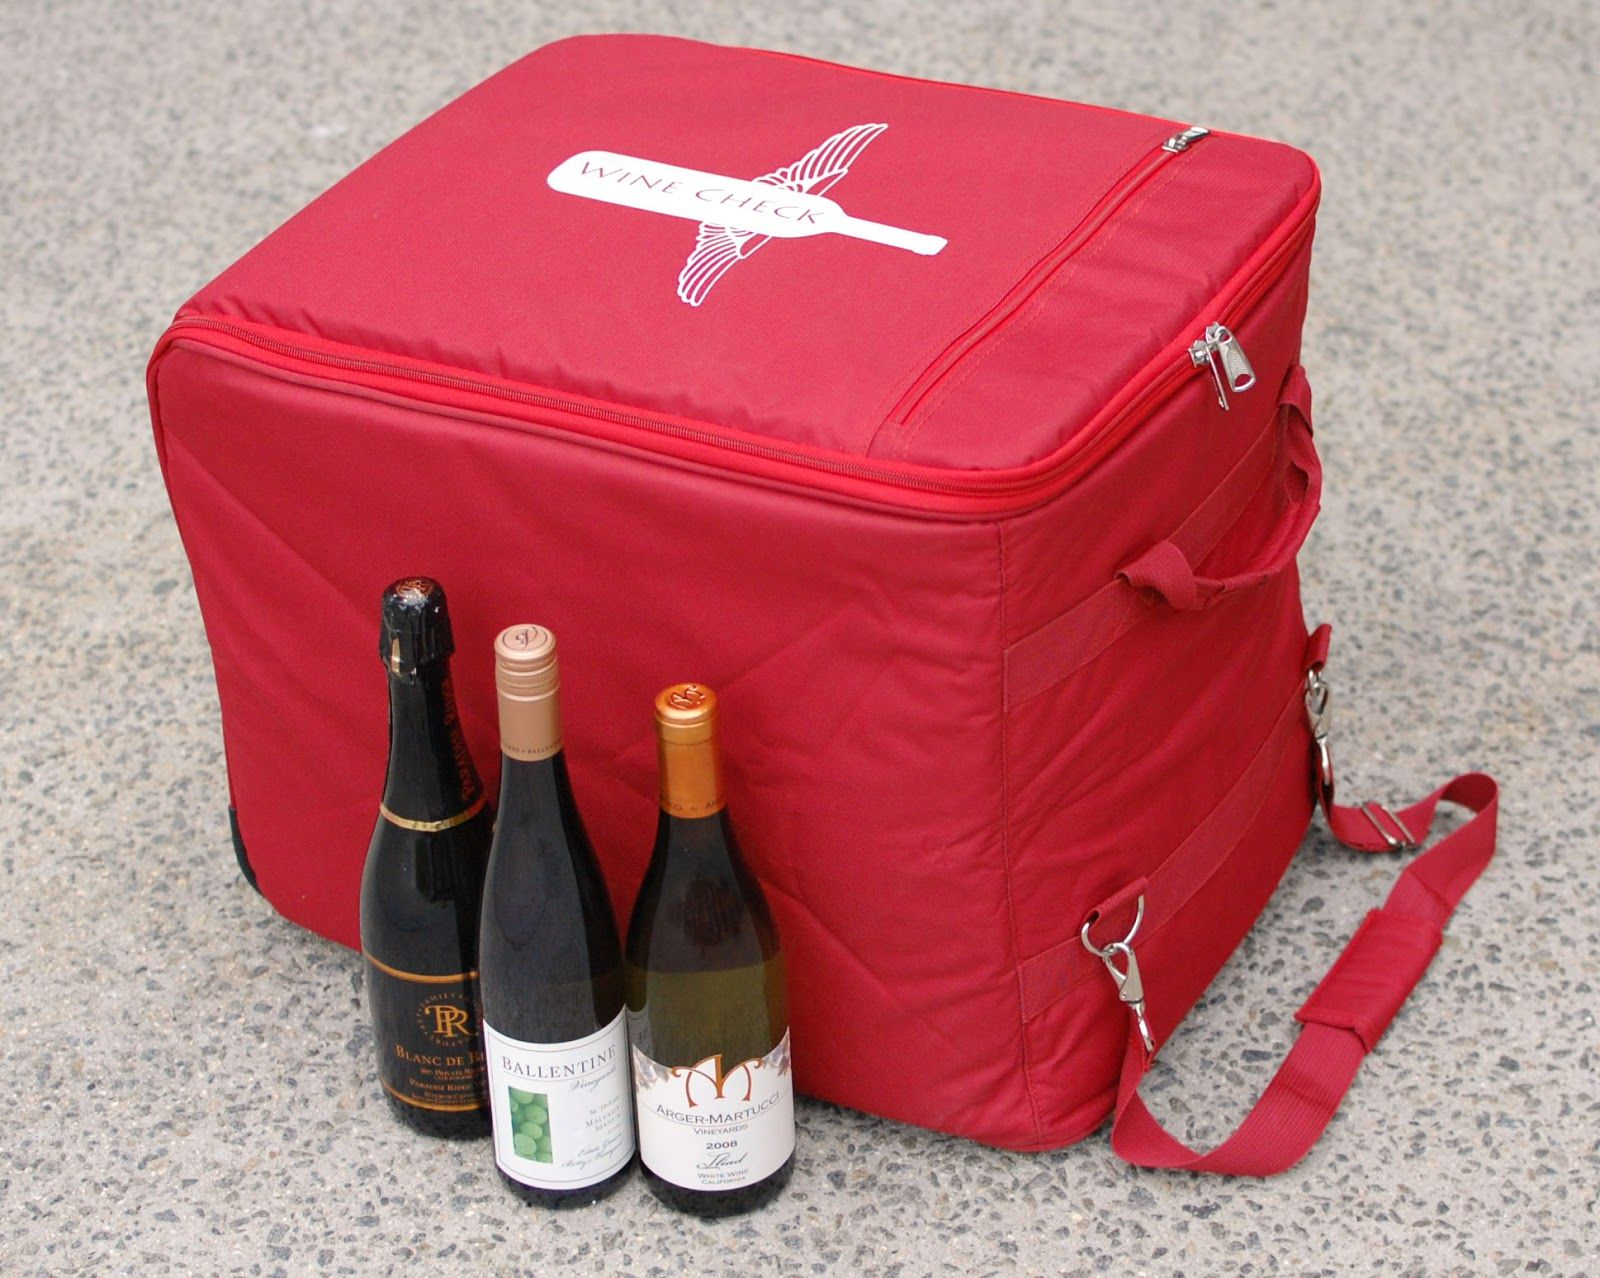 Wine Check Great For Bringing Back A Case From International Travel California Or Your Favorite Wine Region Wine And Spirits Wine Travel Tools